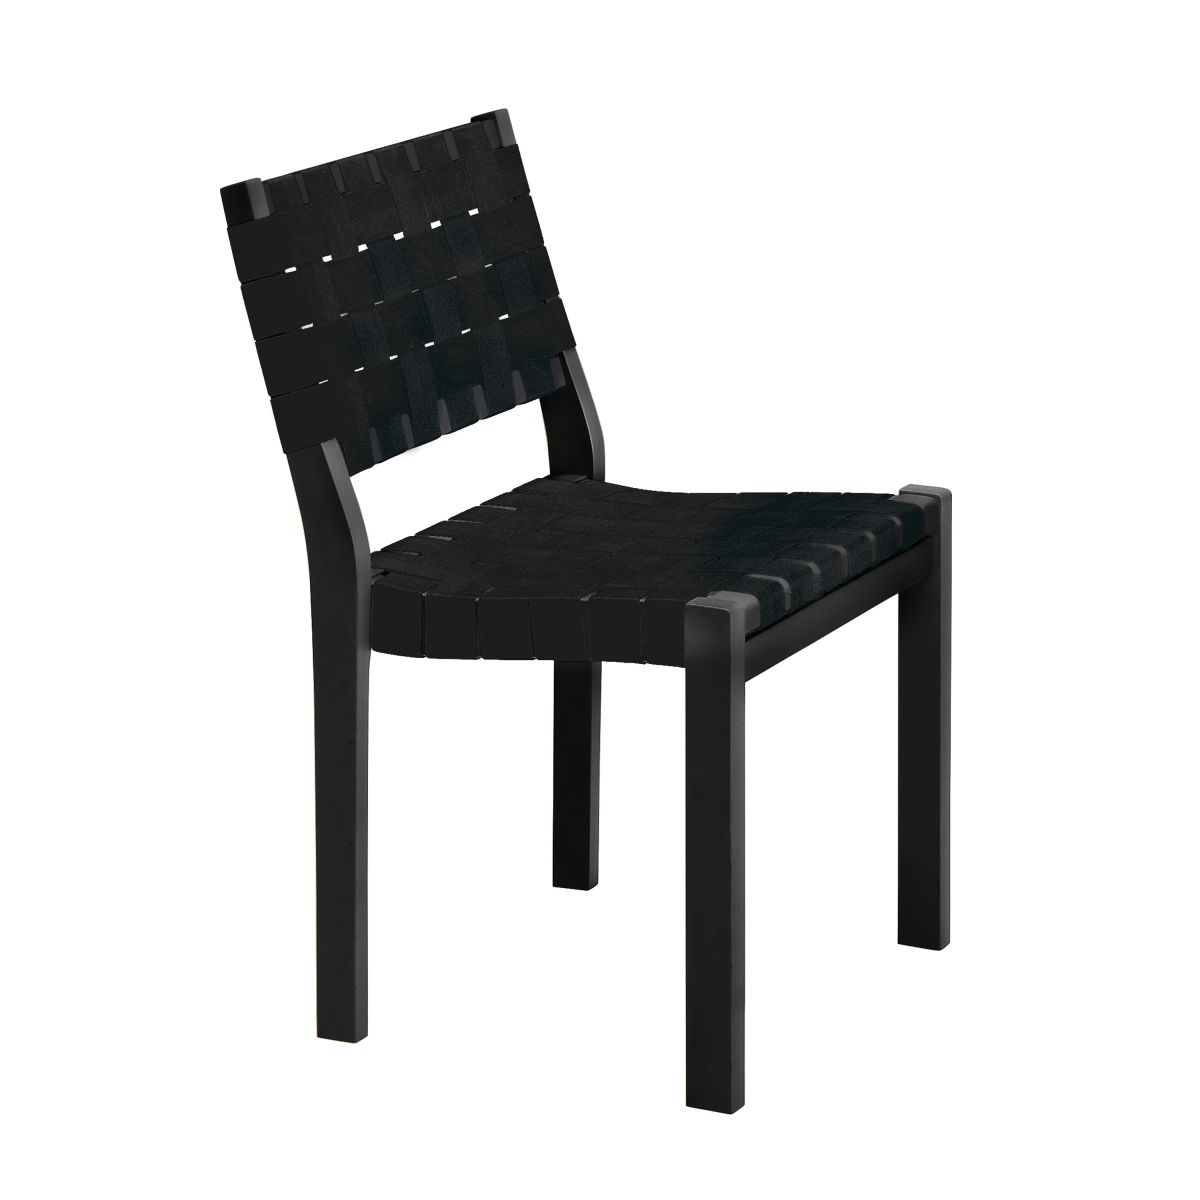 Chair 611 black lacquer black webbing